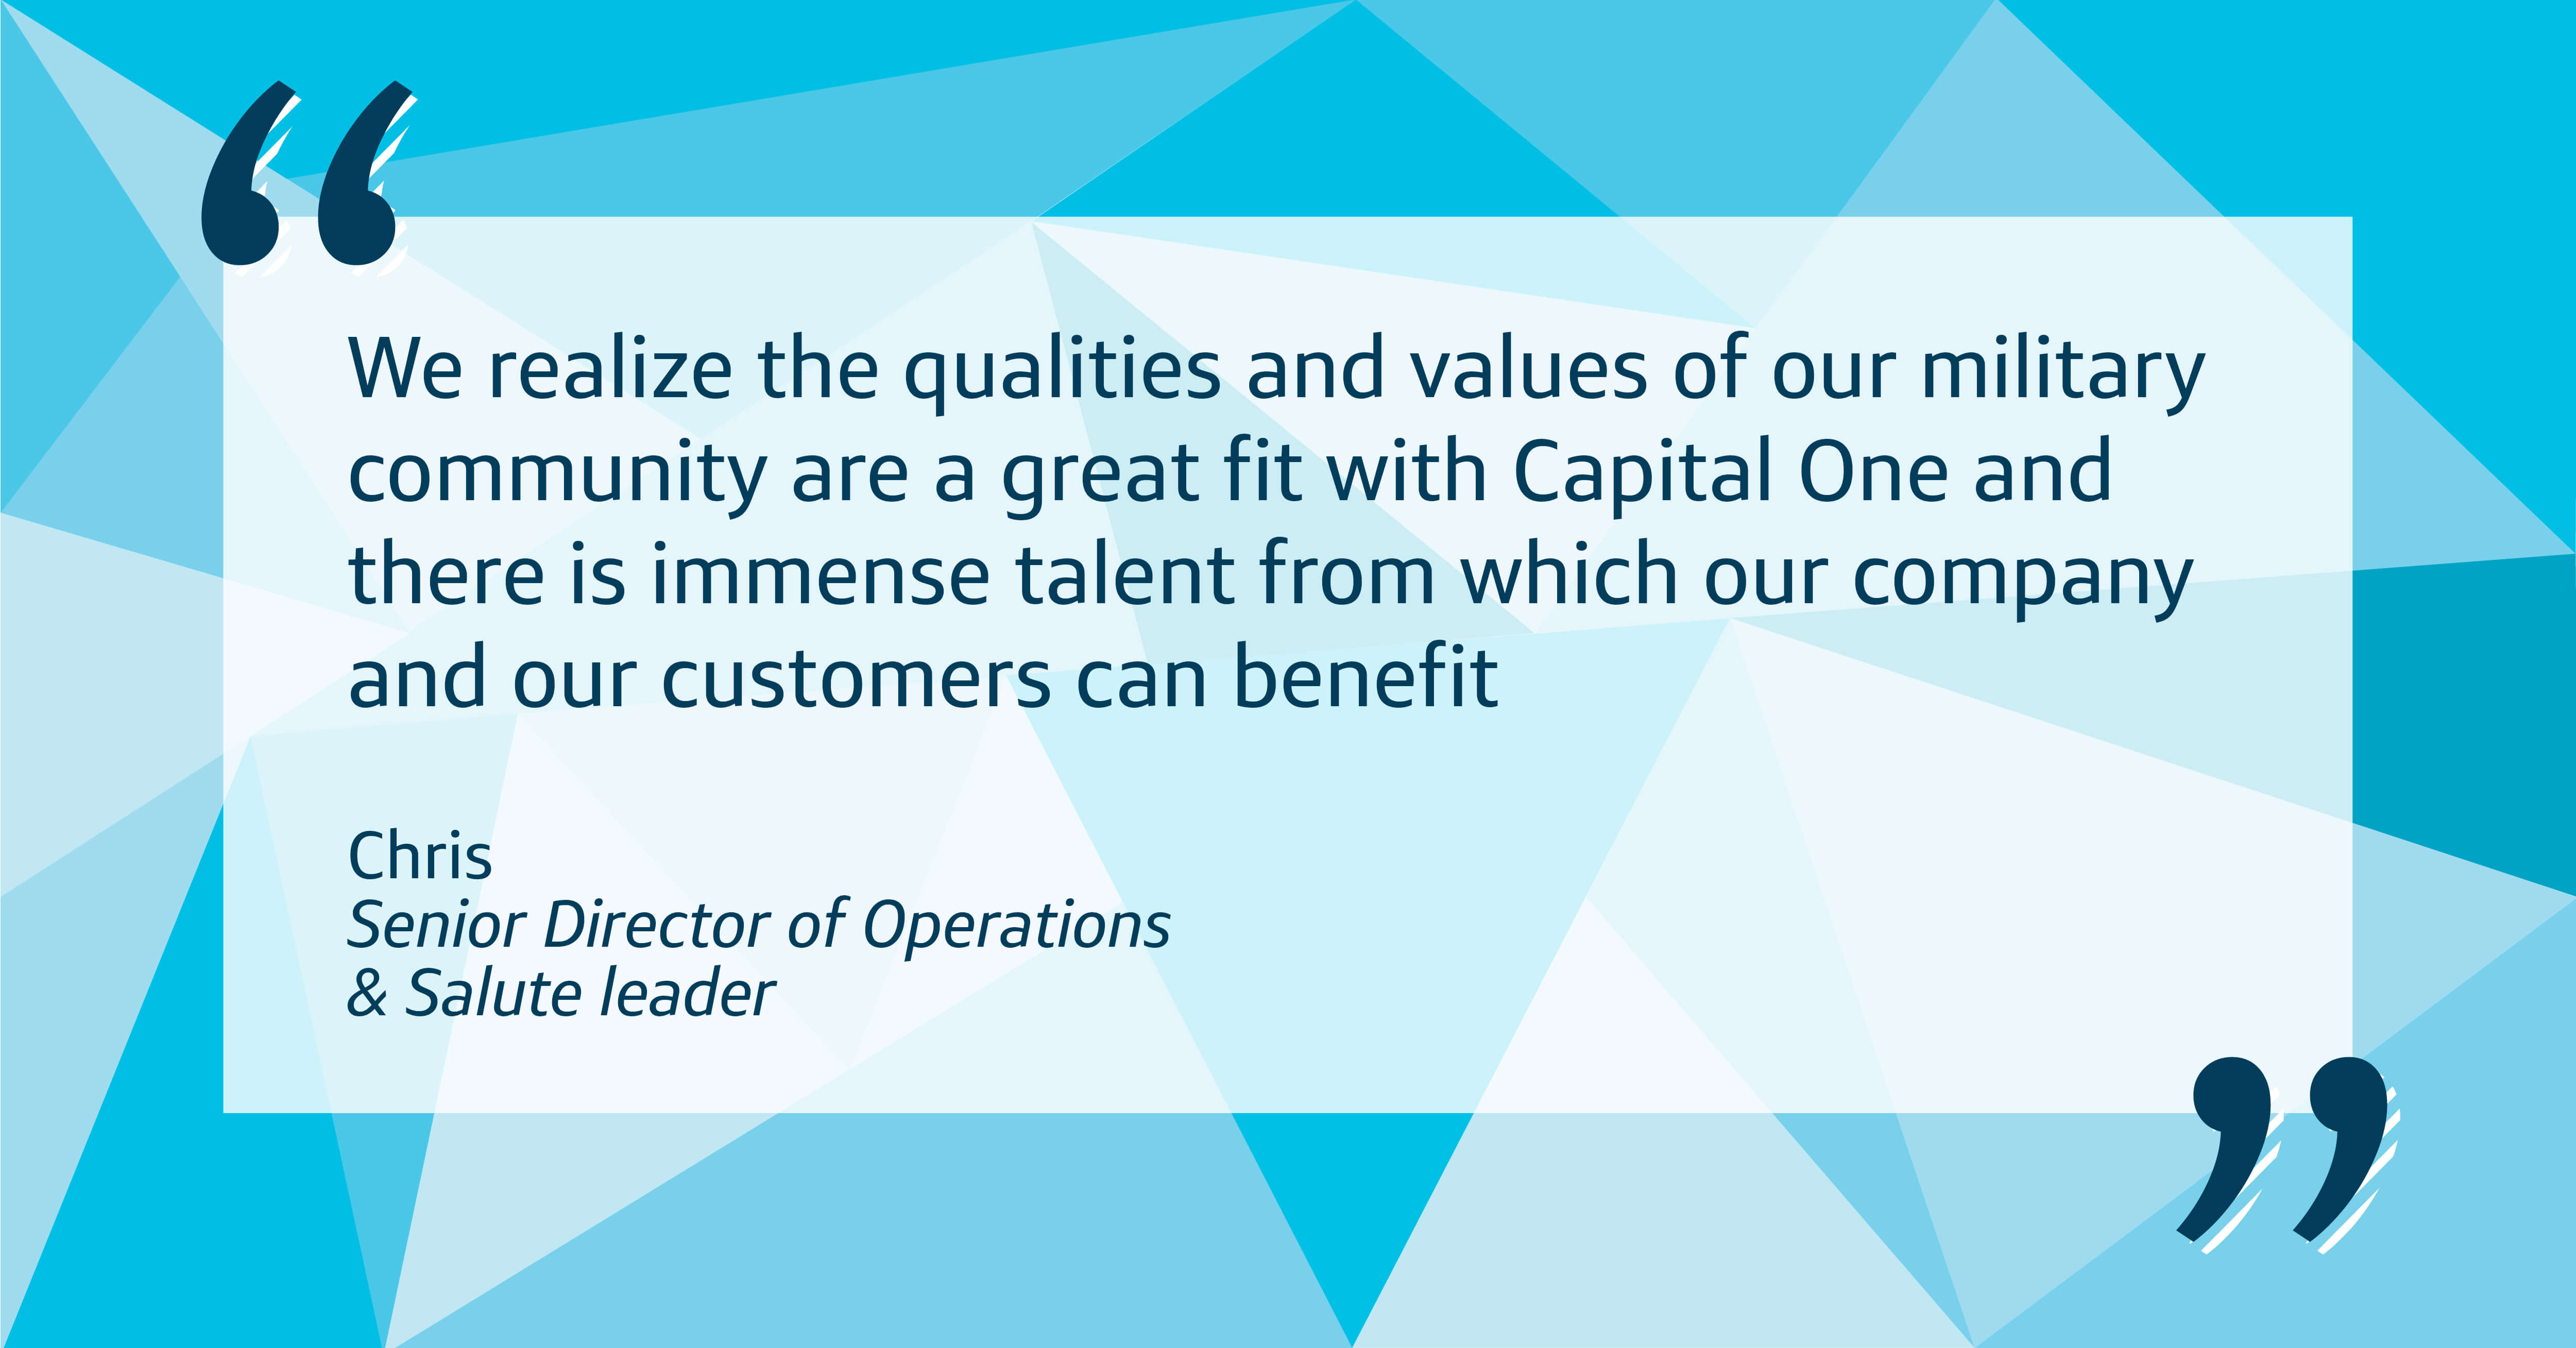 """We realize the qualities and values of our military community are a great fit with Capital One and there is immense talent from which our company and our customers can benefit."""